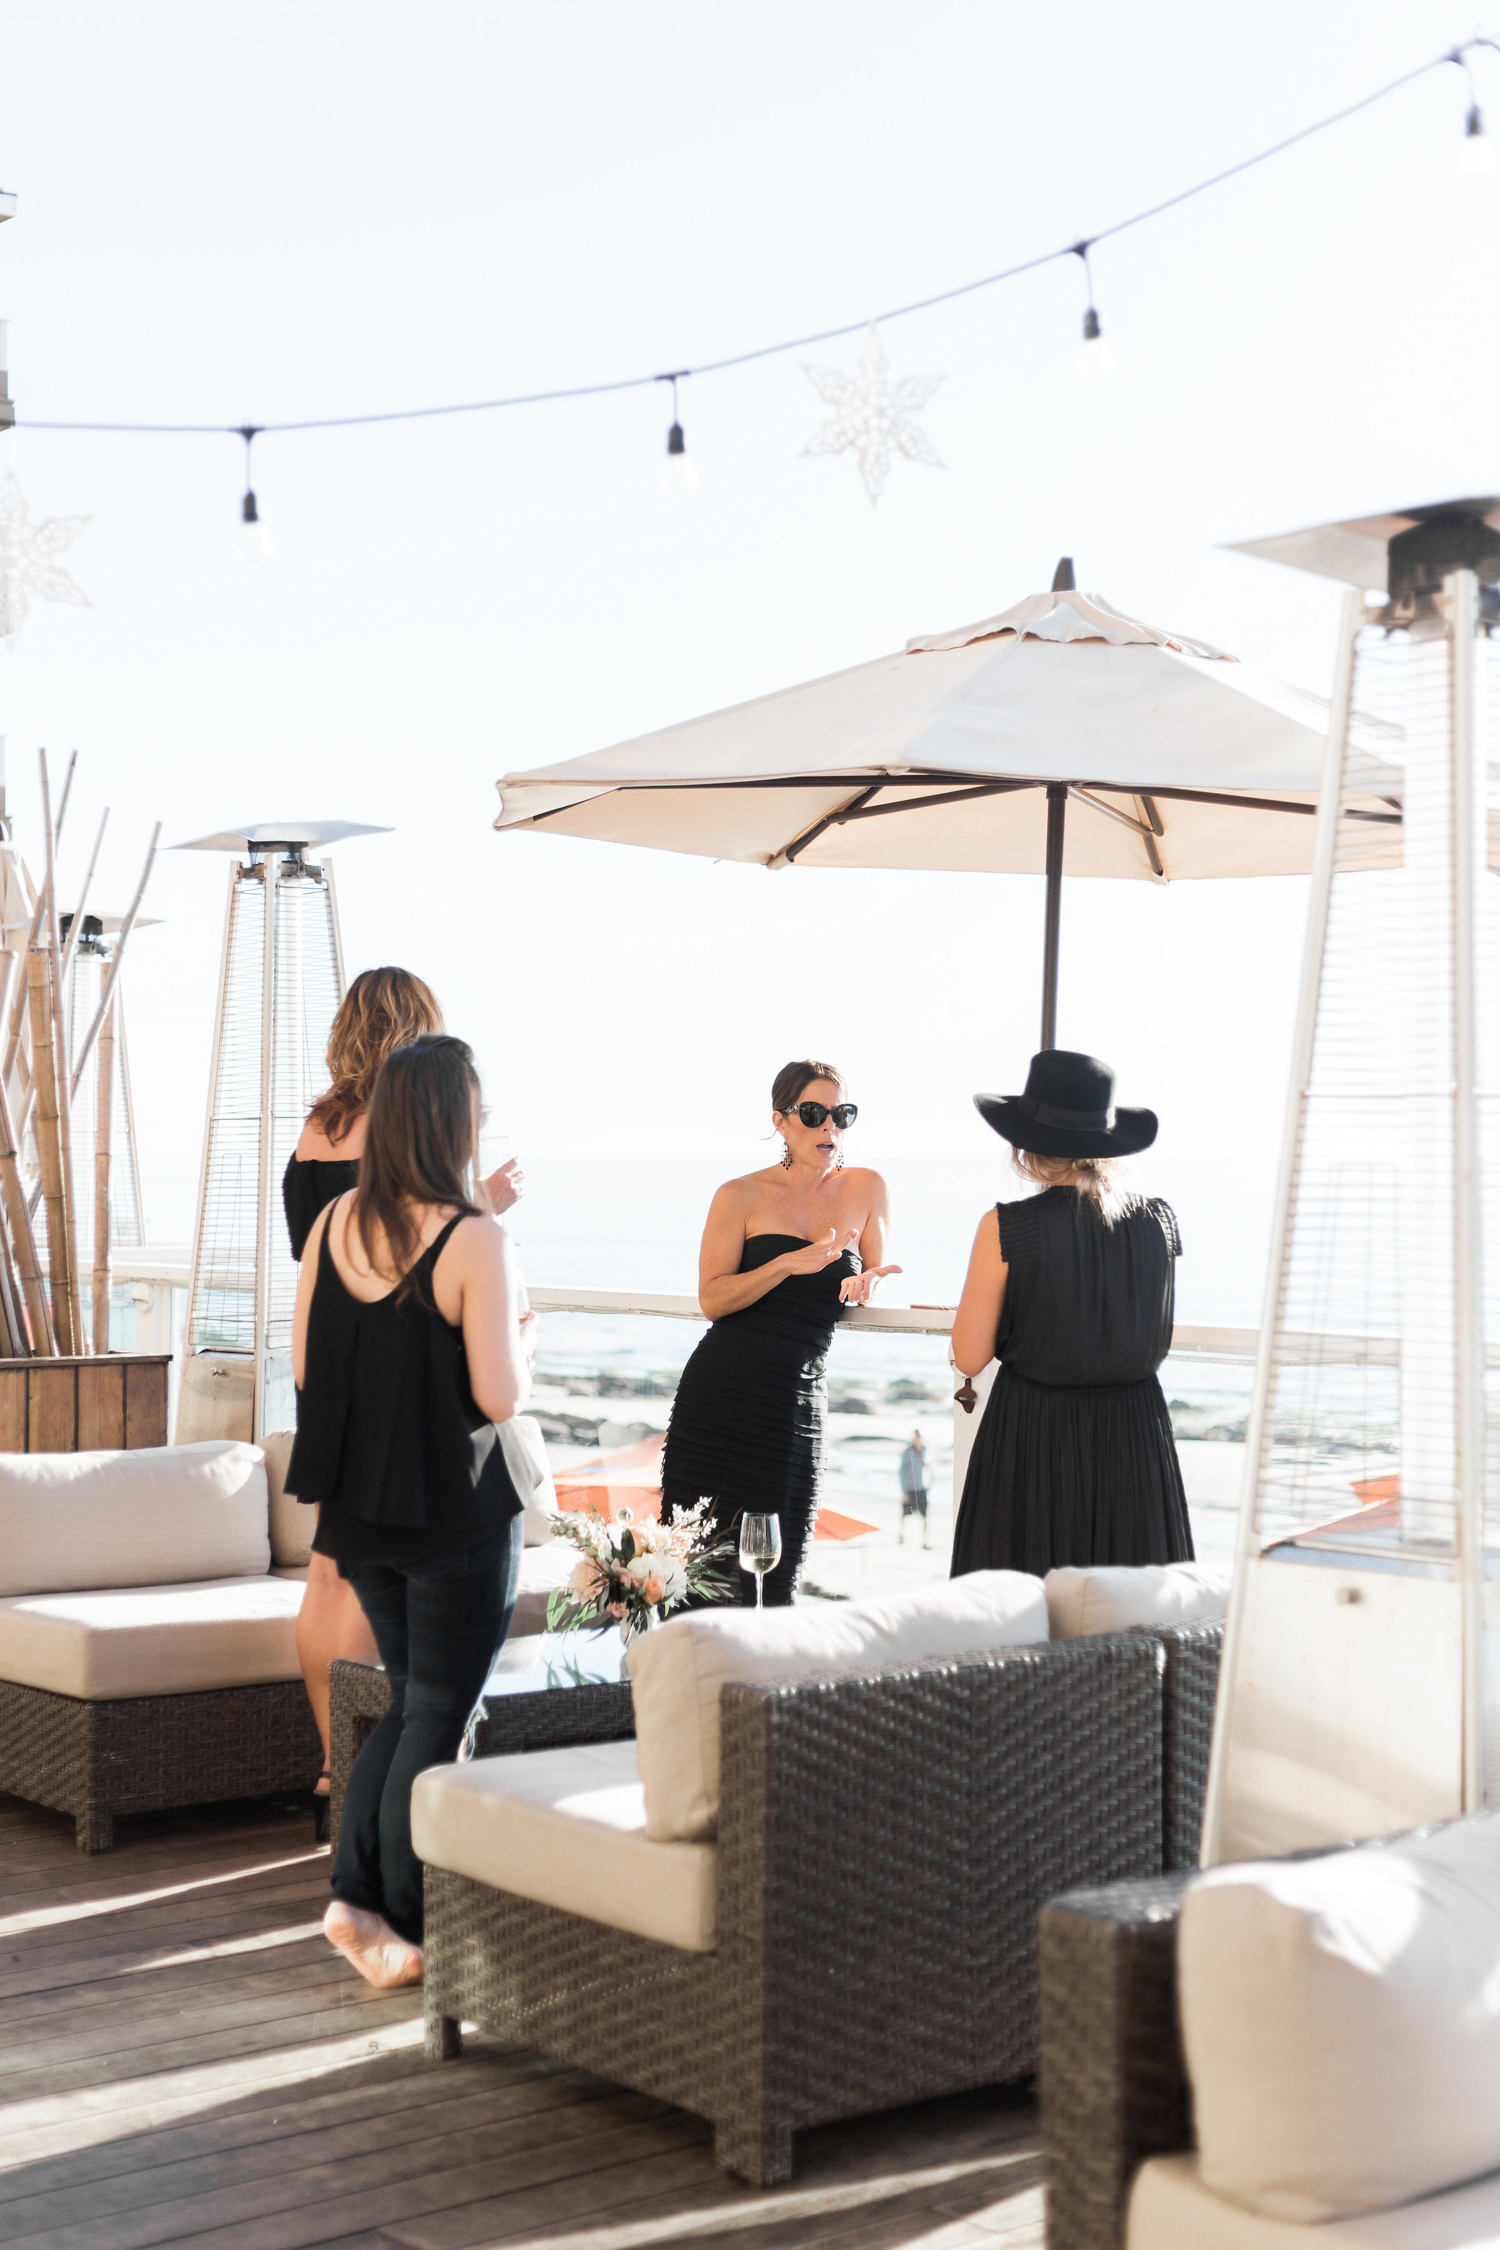 Winter parties in California! We celebrated with our team in the bungalows at Pacific Edge Hotel in Laguna Beach | A Fabulous Fete